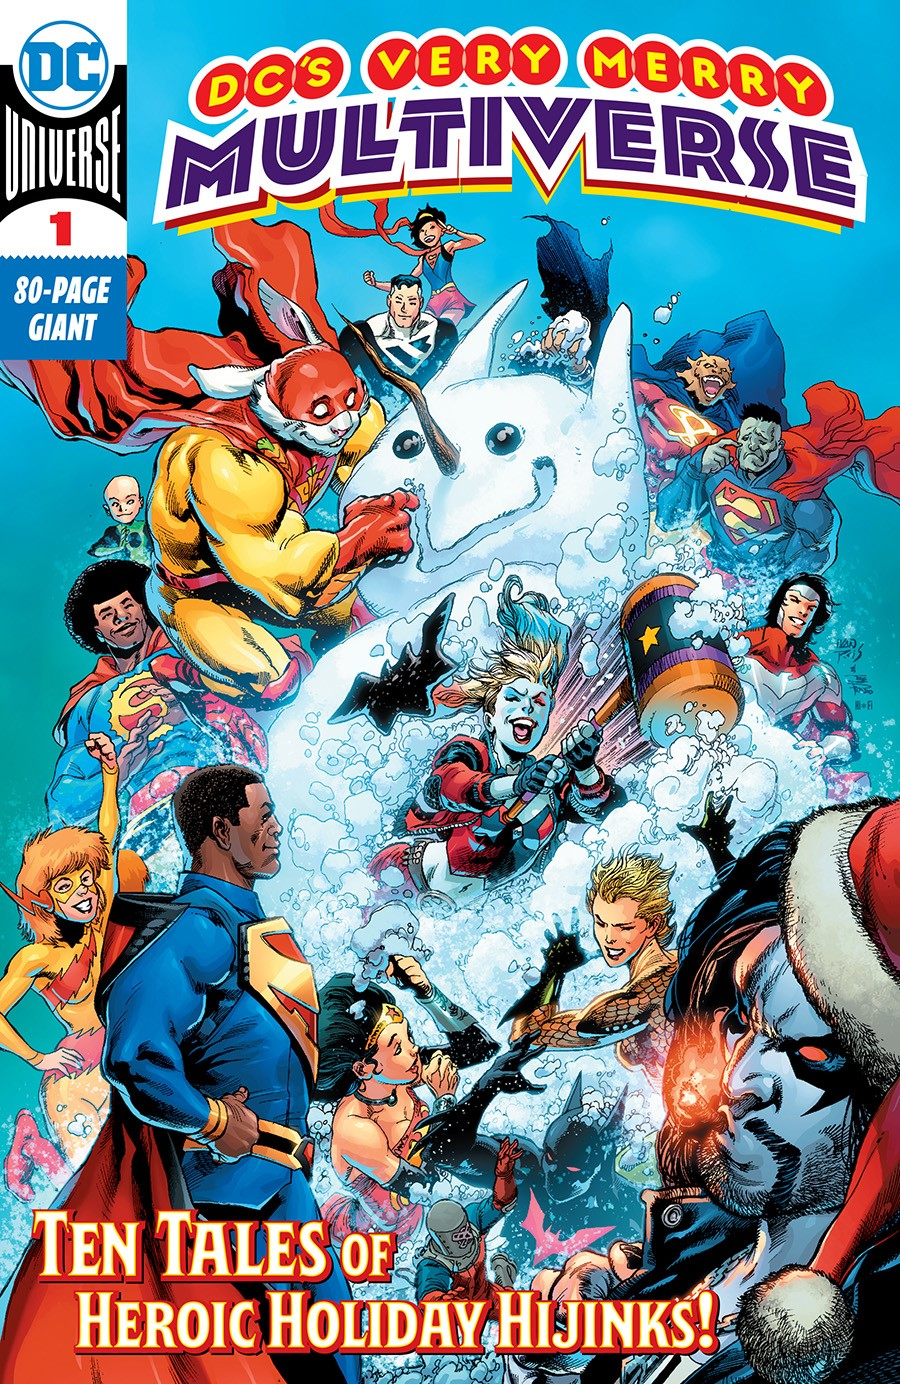 DCS VERY MERRY MULTIVERSE #1 (ONE SHOT)